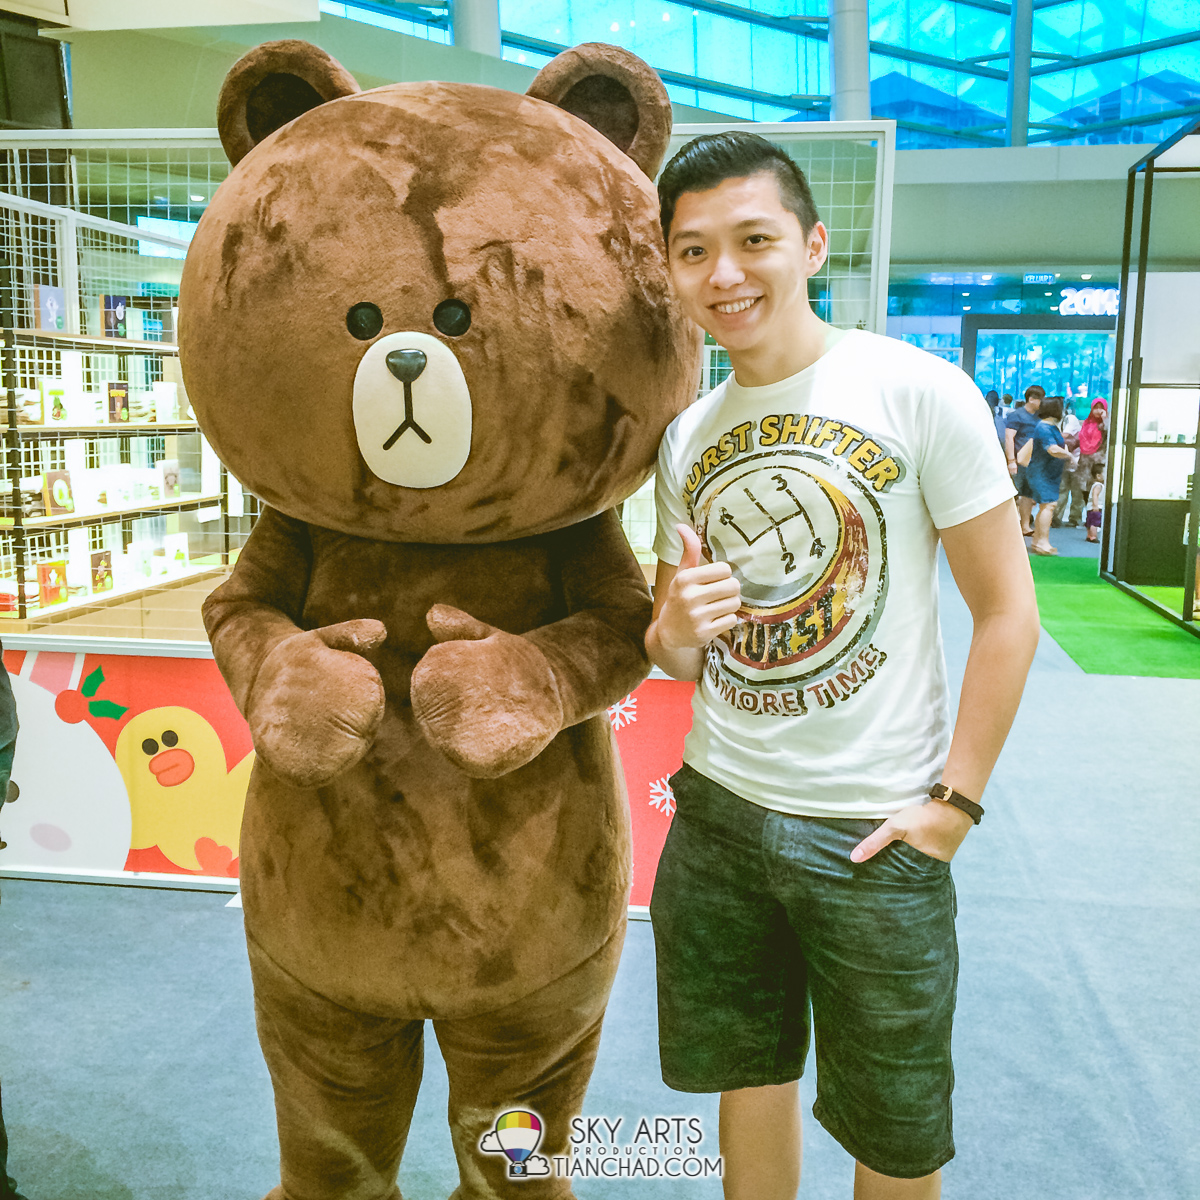 Photo with Brown LINE Mascot at LINE Friends Pop-Up Store